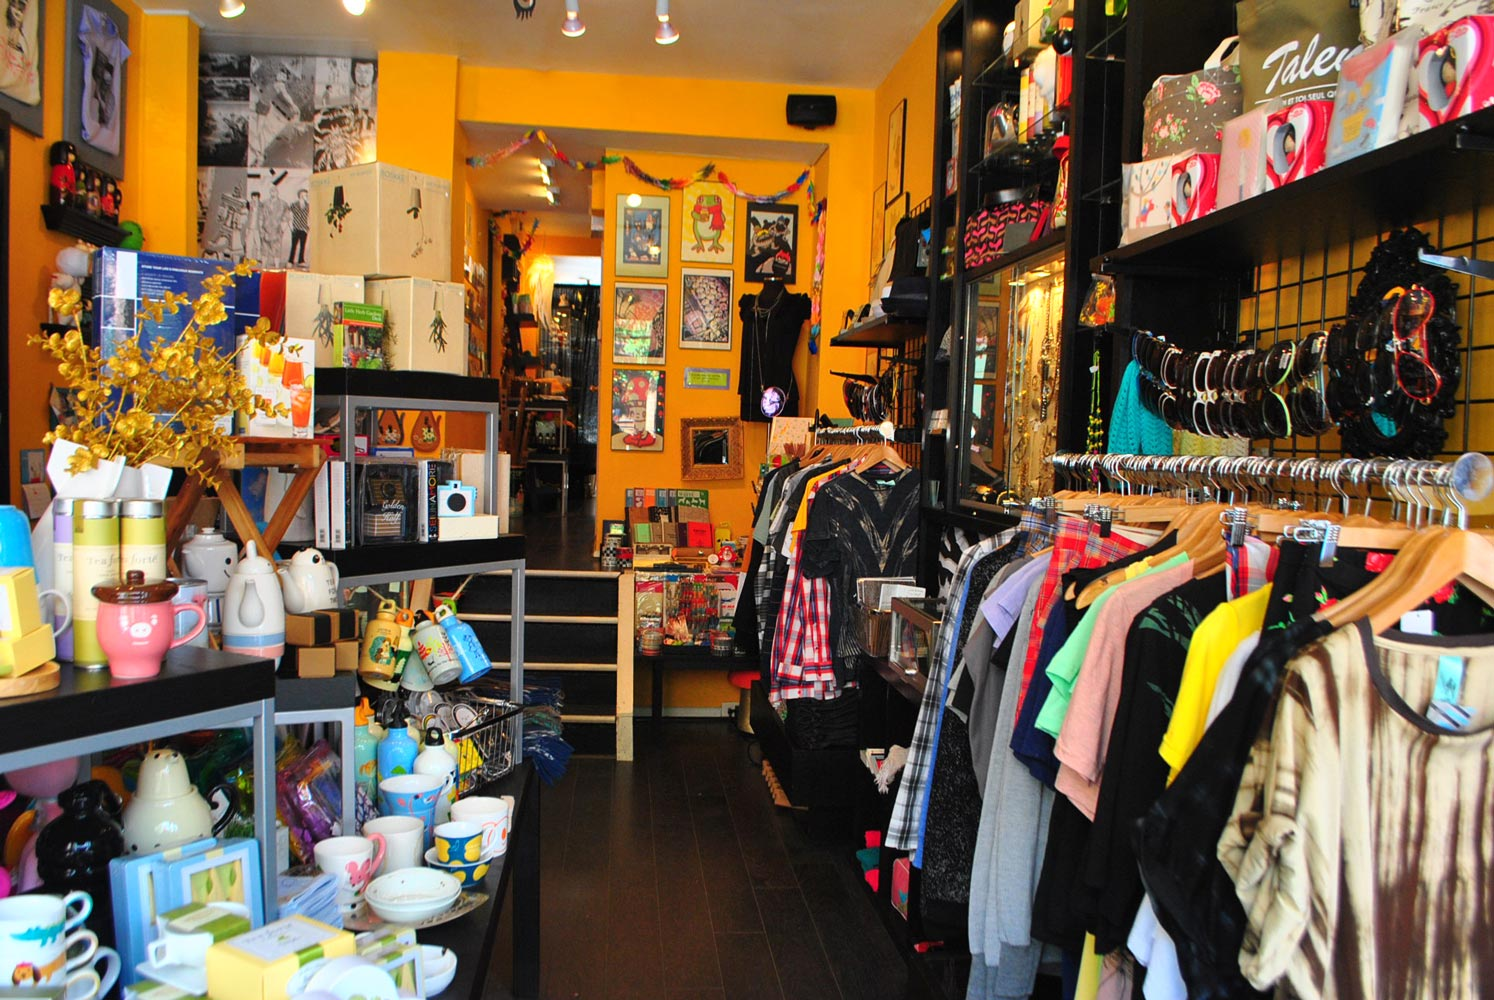 The store in 2010, when the front was full of clothes!